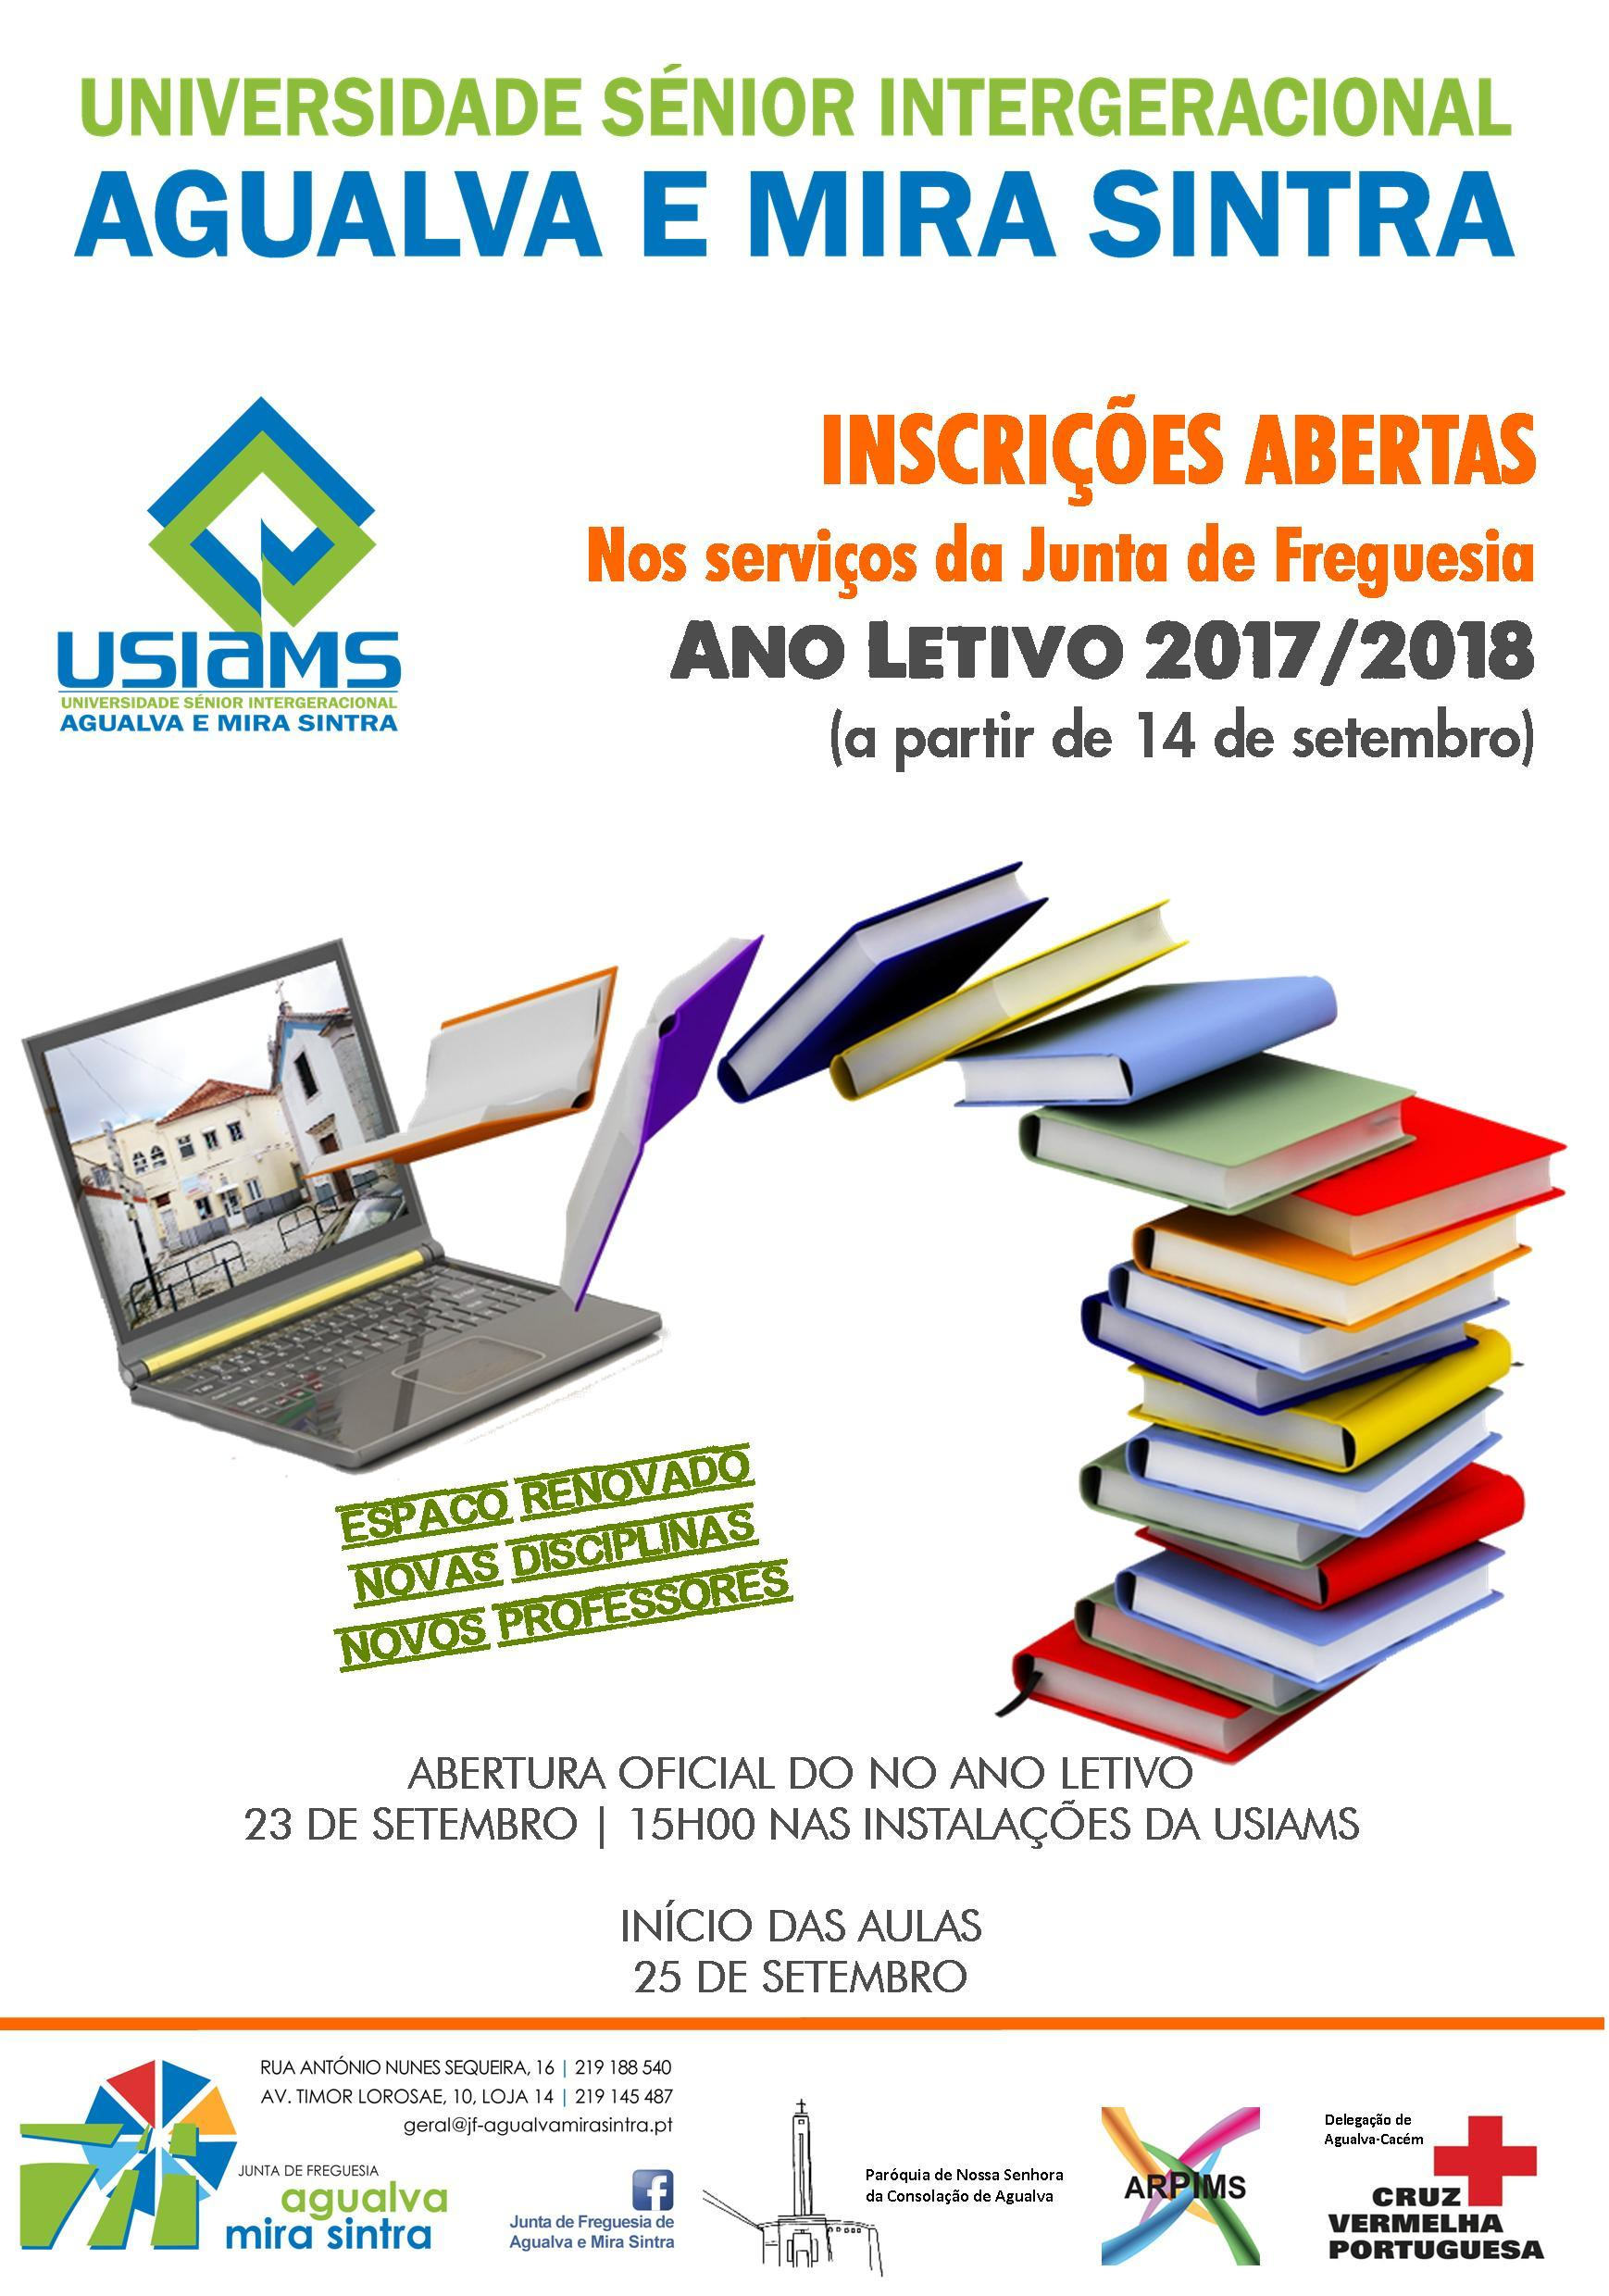 ANO LETIVO 2017/2018 | Universidade Sénior